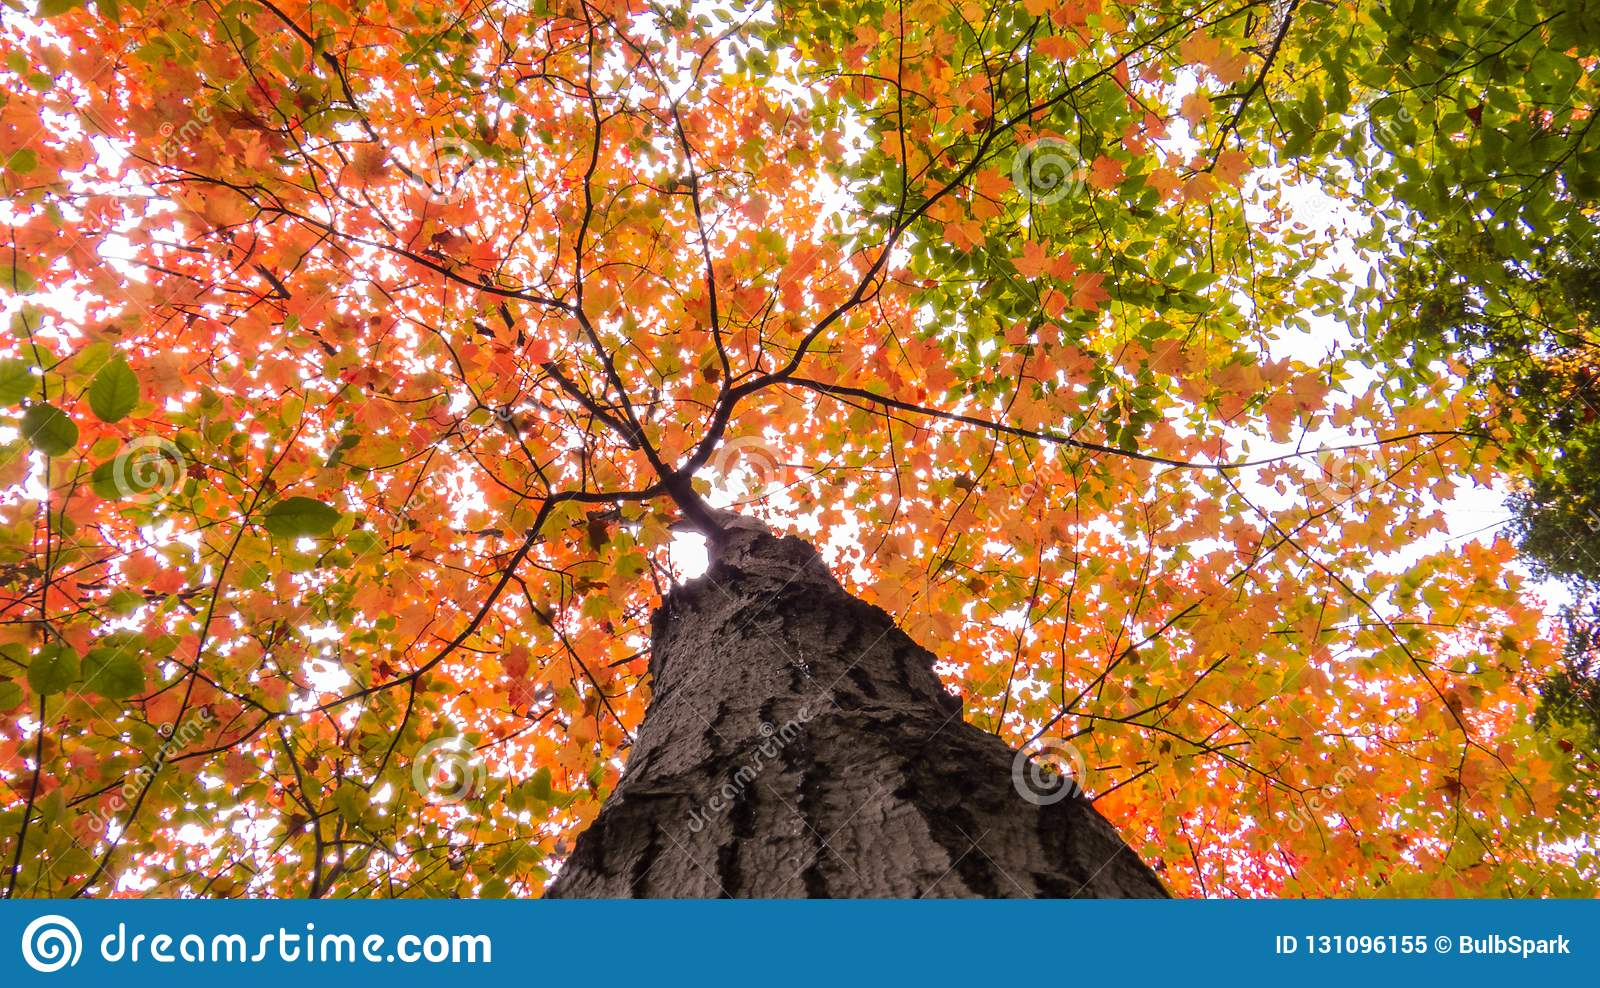 Orange And Green Leaves Of Many Treetops Stock Image - Image of